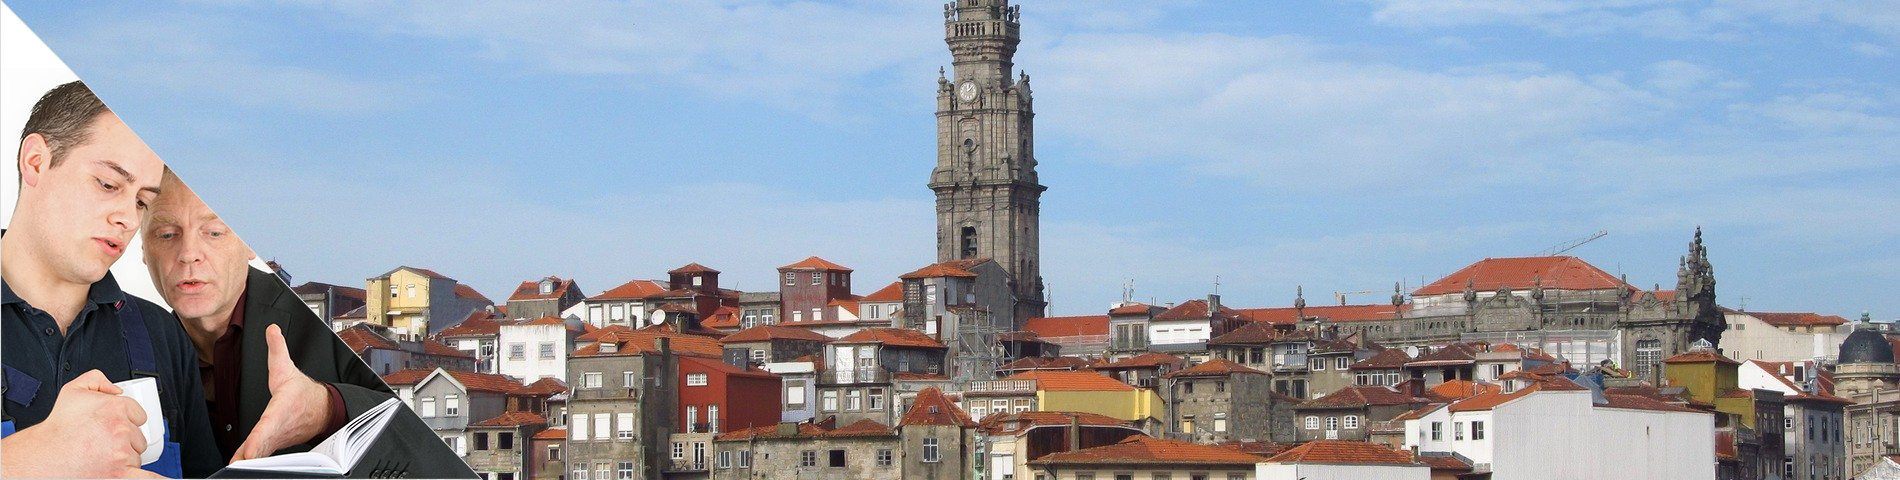 Oporto - Clases Particulares